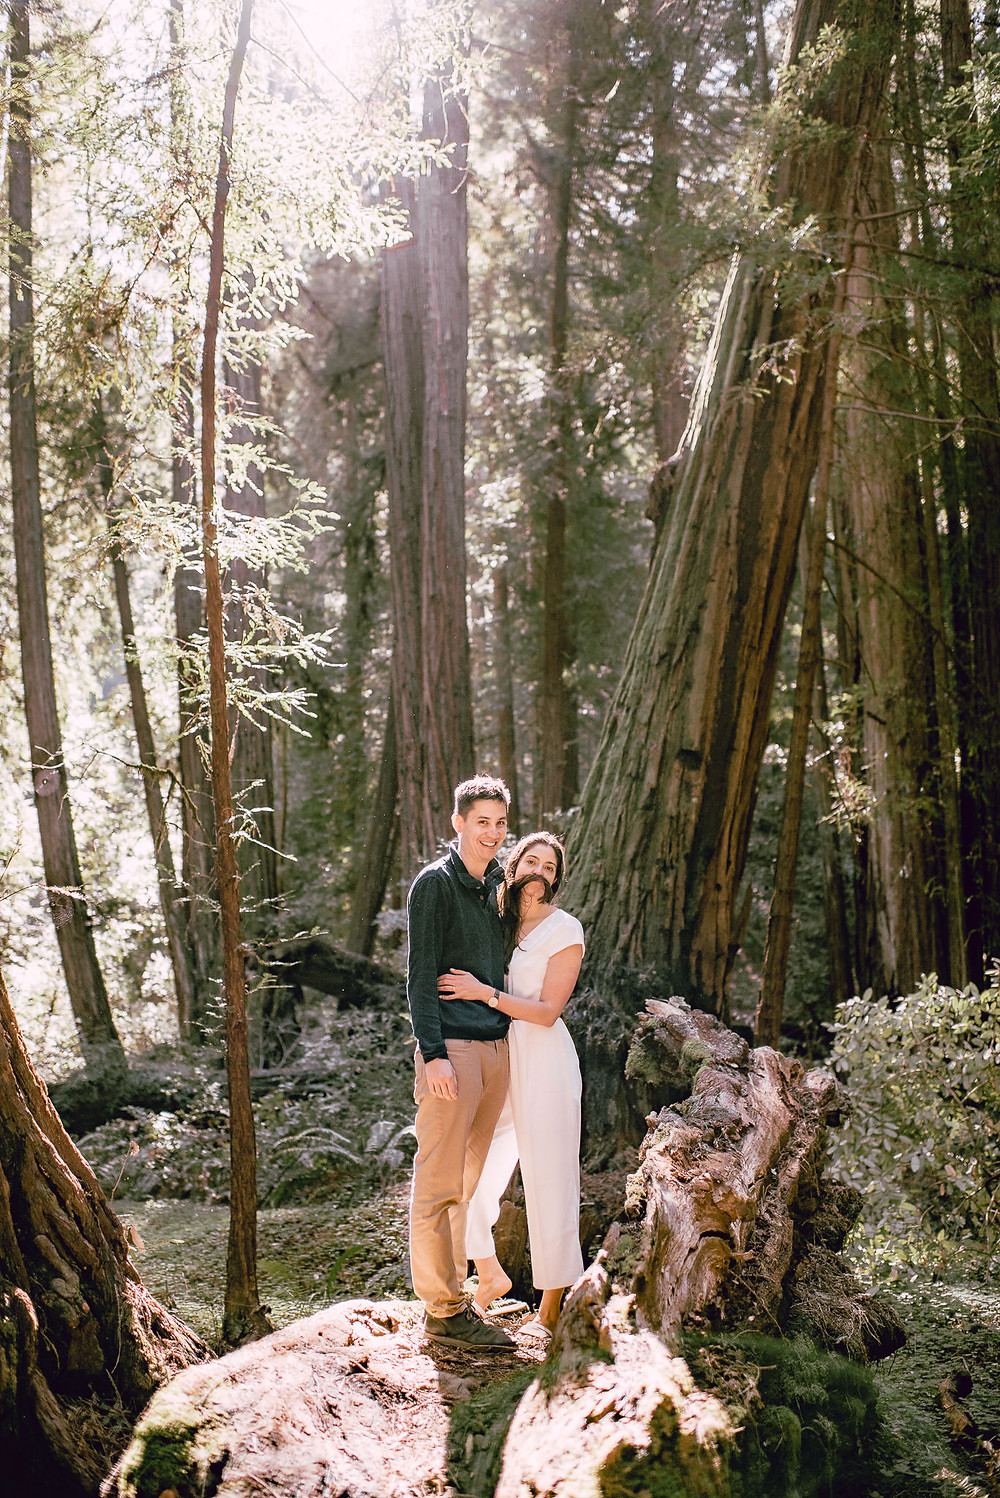 Fun Engagement Session in the Redwood Forest, California